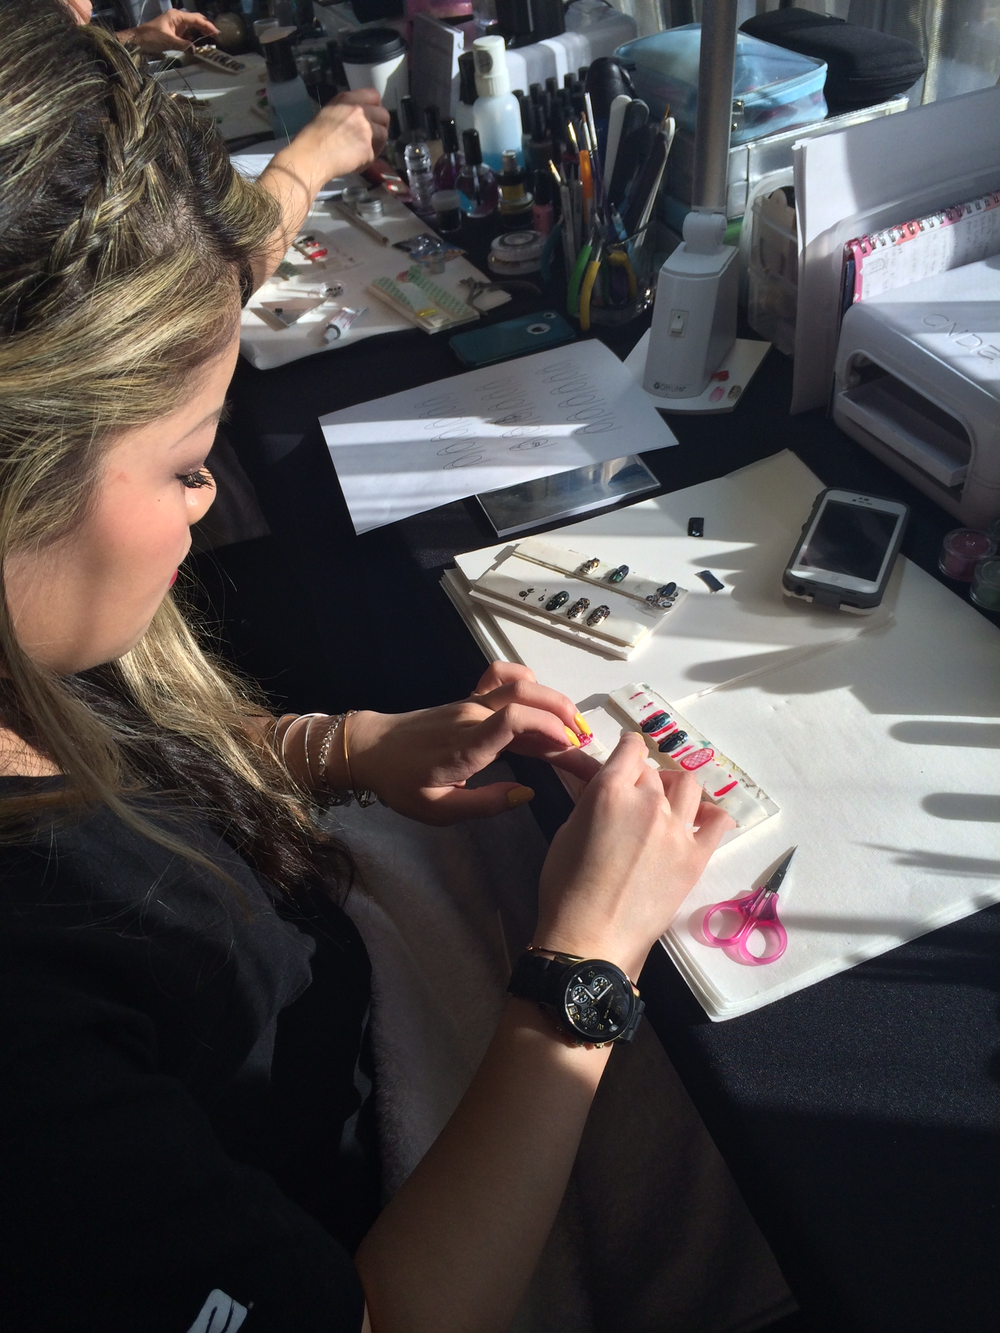 <p>CND education ambassador Michele Huynh preps custom nail designs for The Blonds' New York Fashion Week runway show in the CND Design Lab.</p>